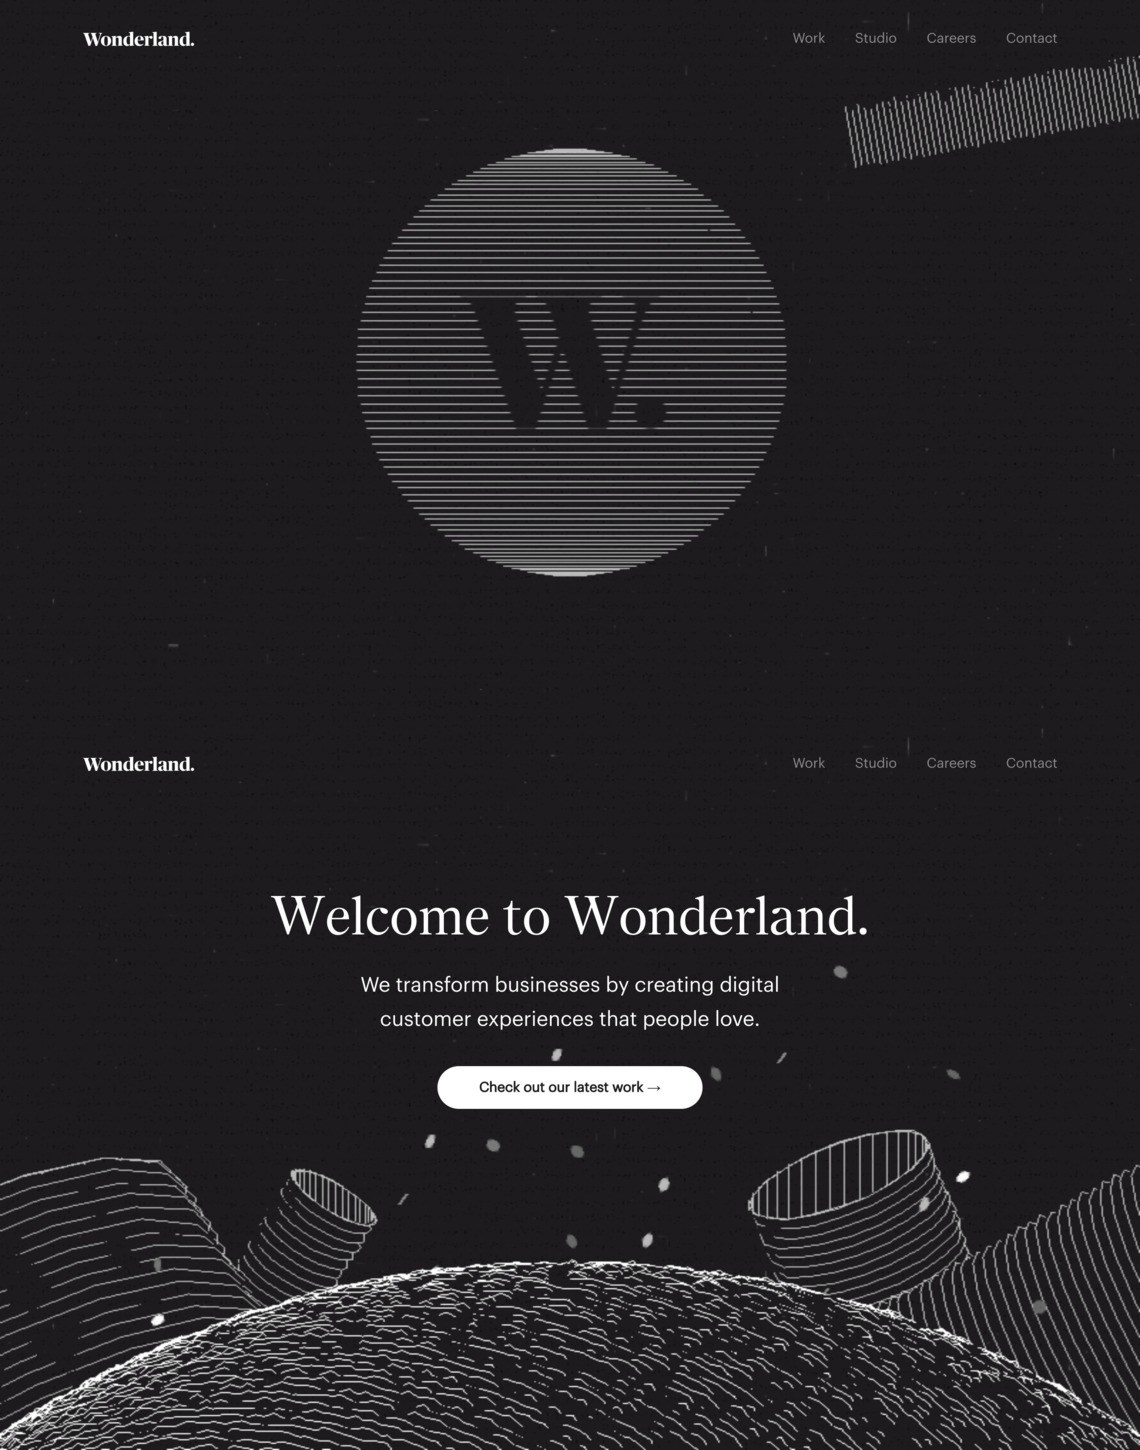 Wonderland. - UX Design Studio.